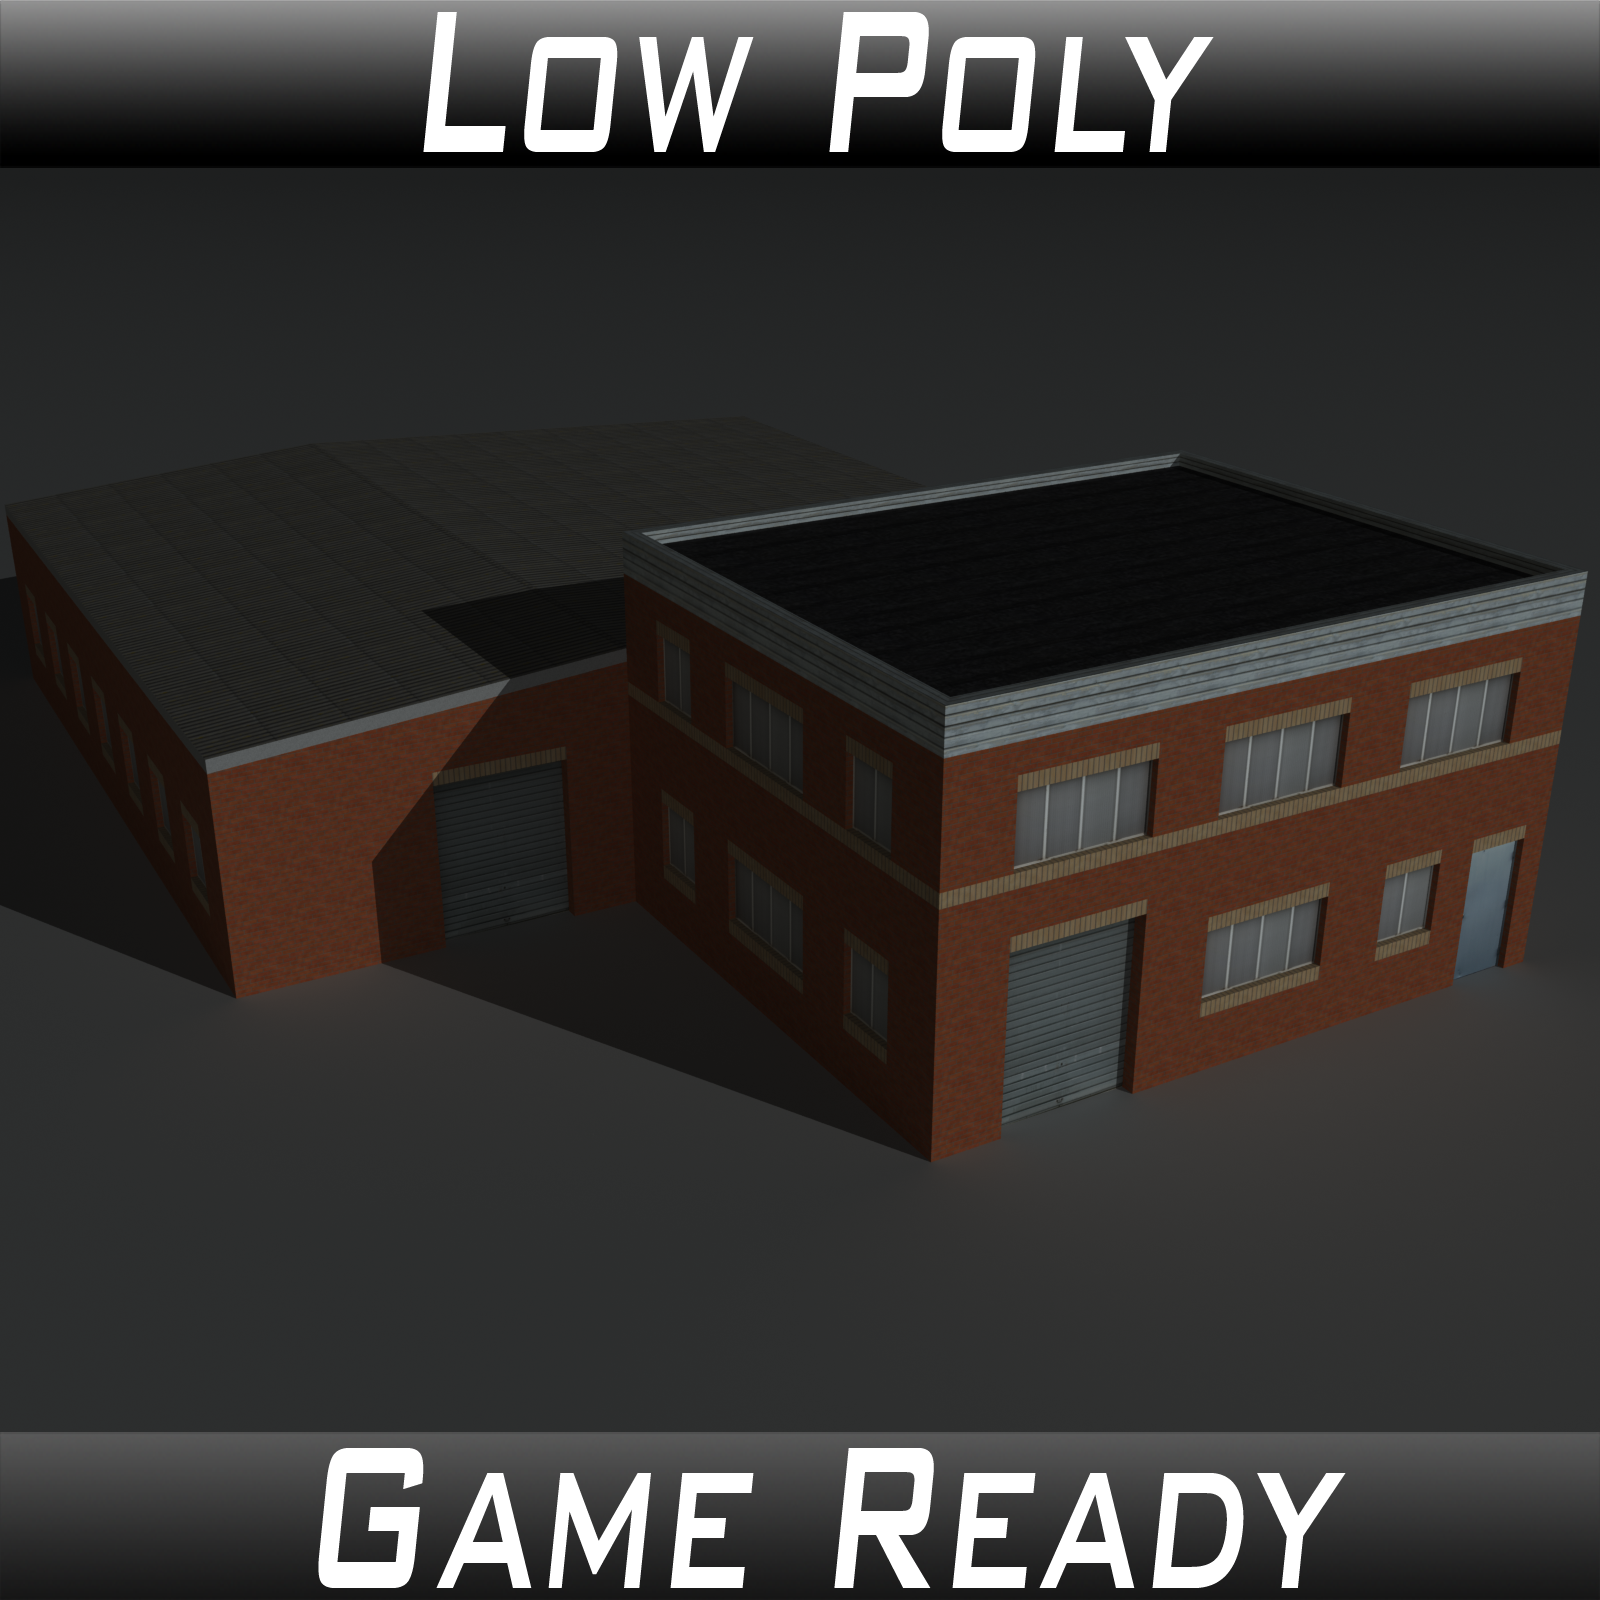 Low Poly Factory Building 23 - Extended Licence